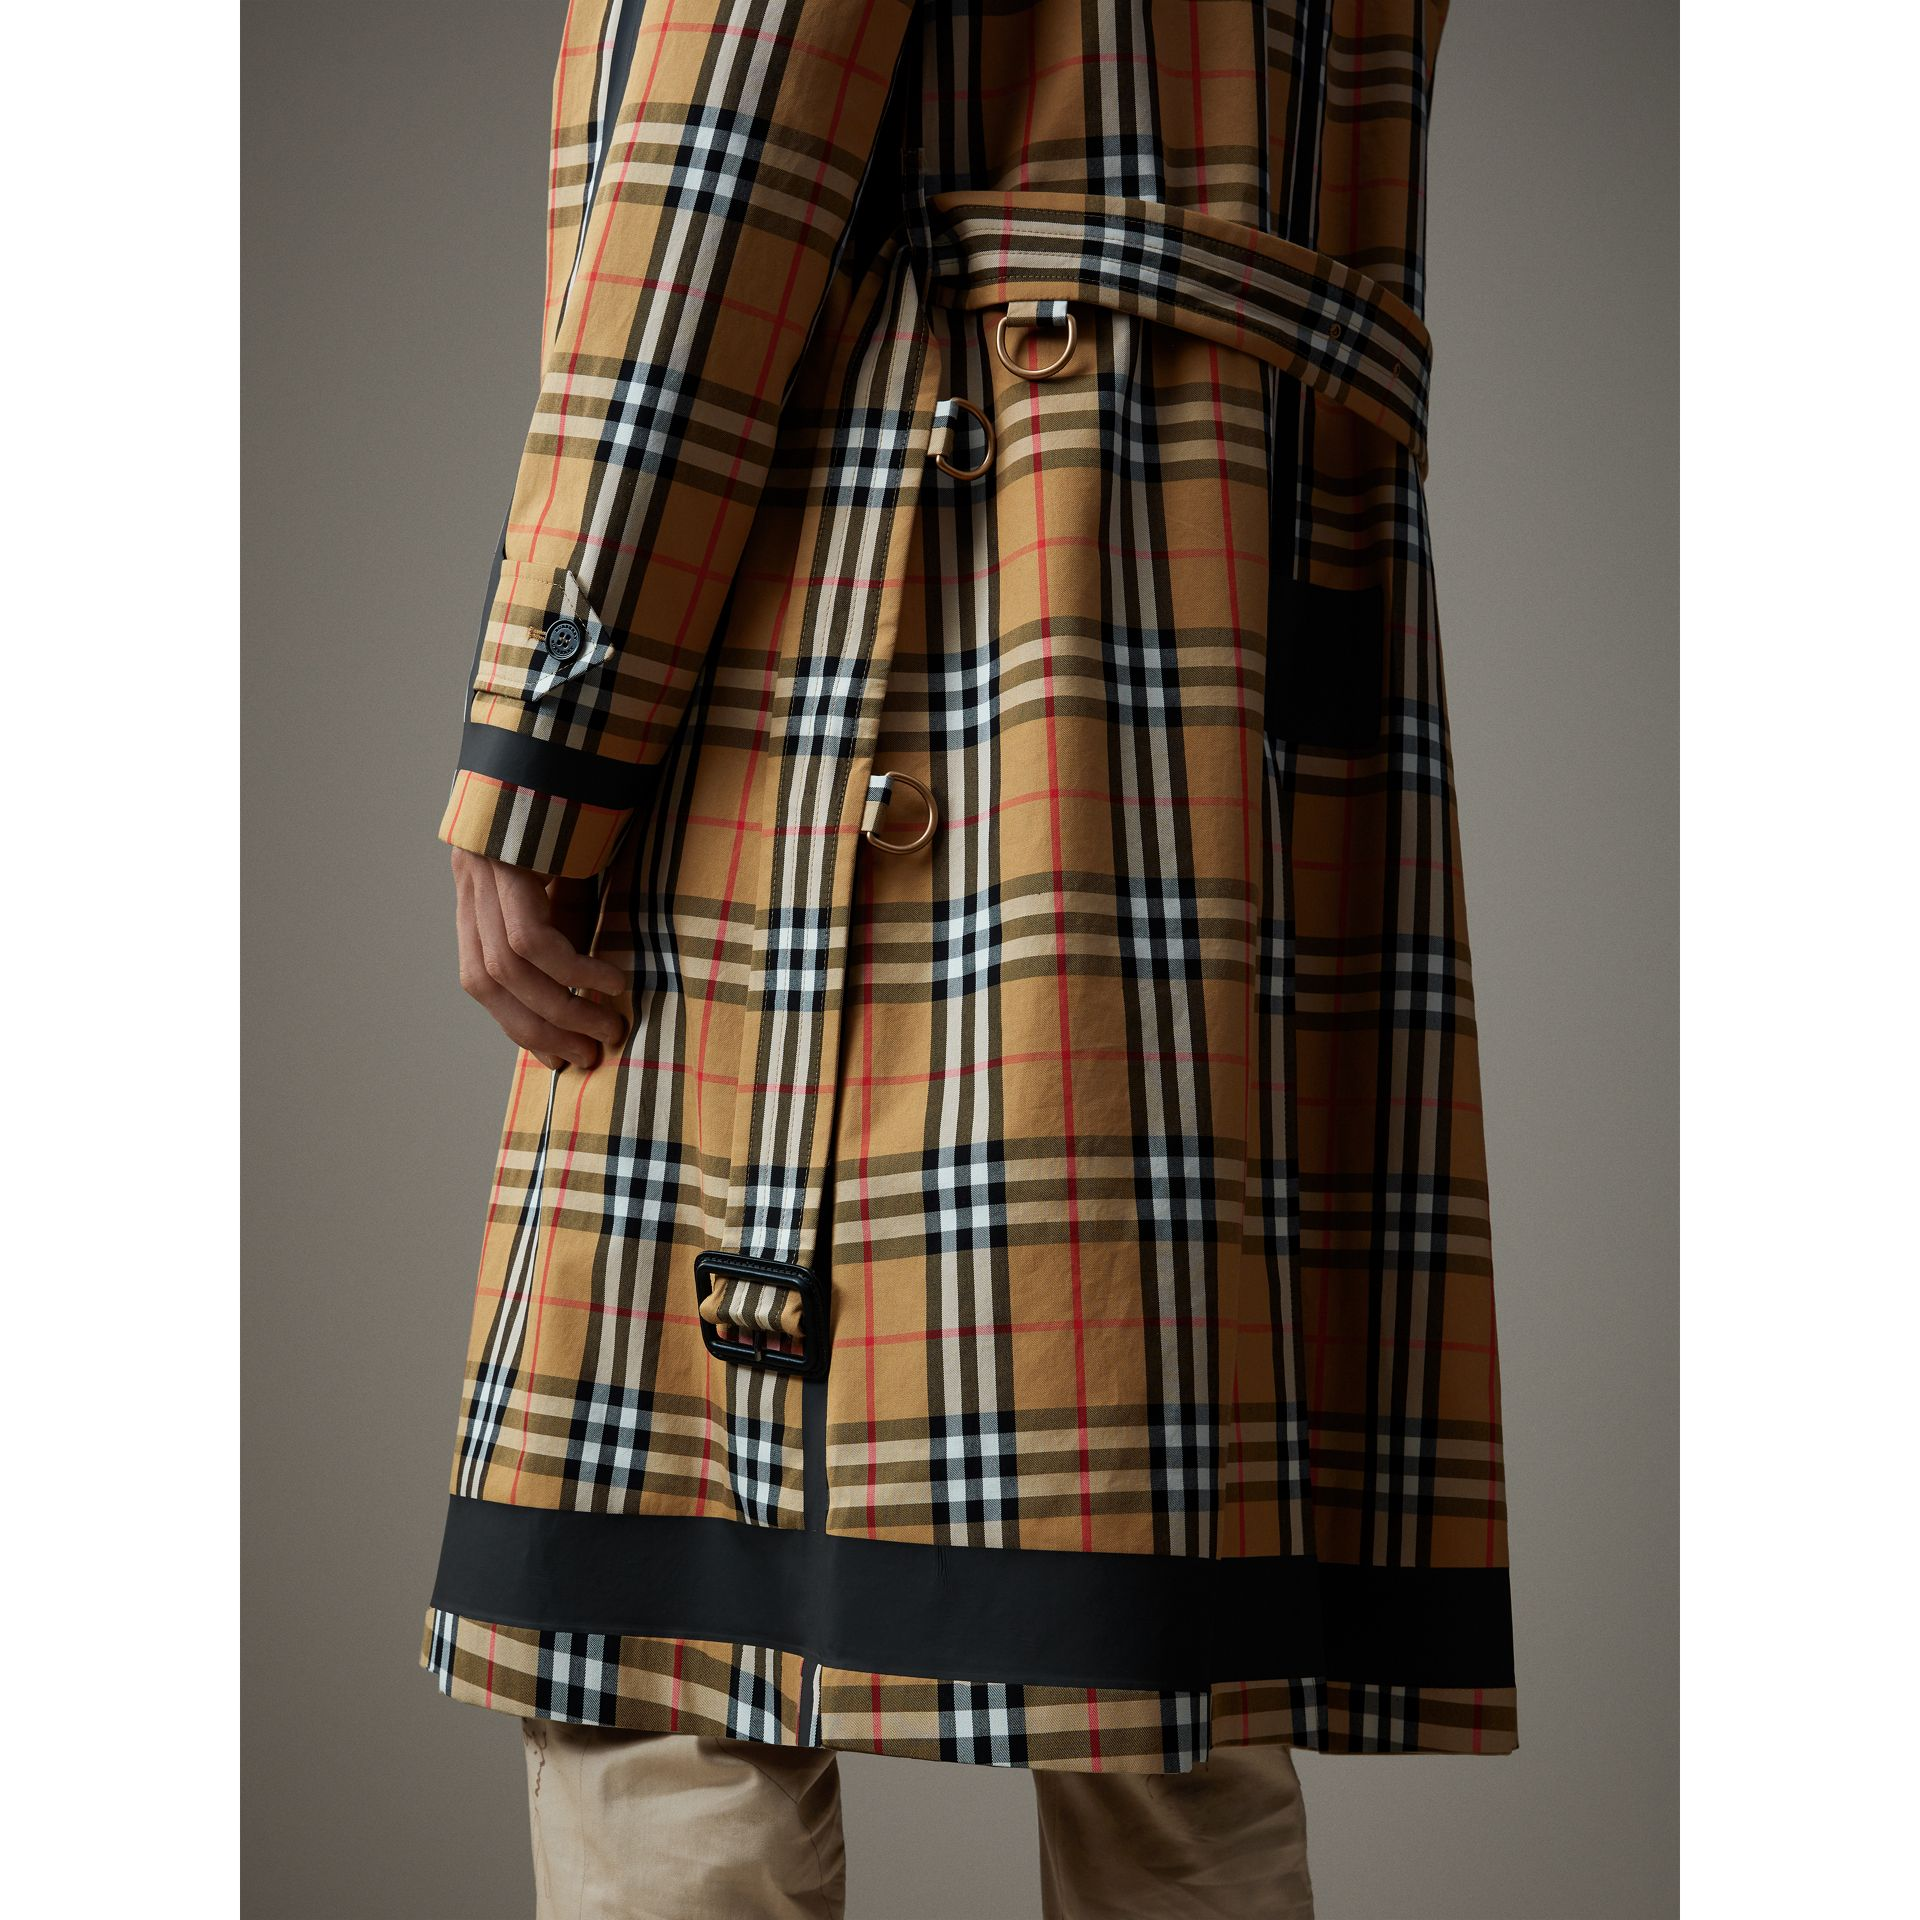 Paletot réversible en gabardine à motif Vintage check (Jaune Antique) - Homme | Burberry - photo de la galerie 2